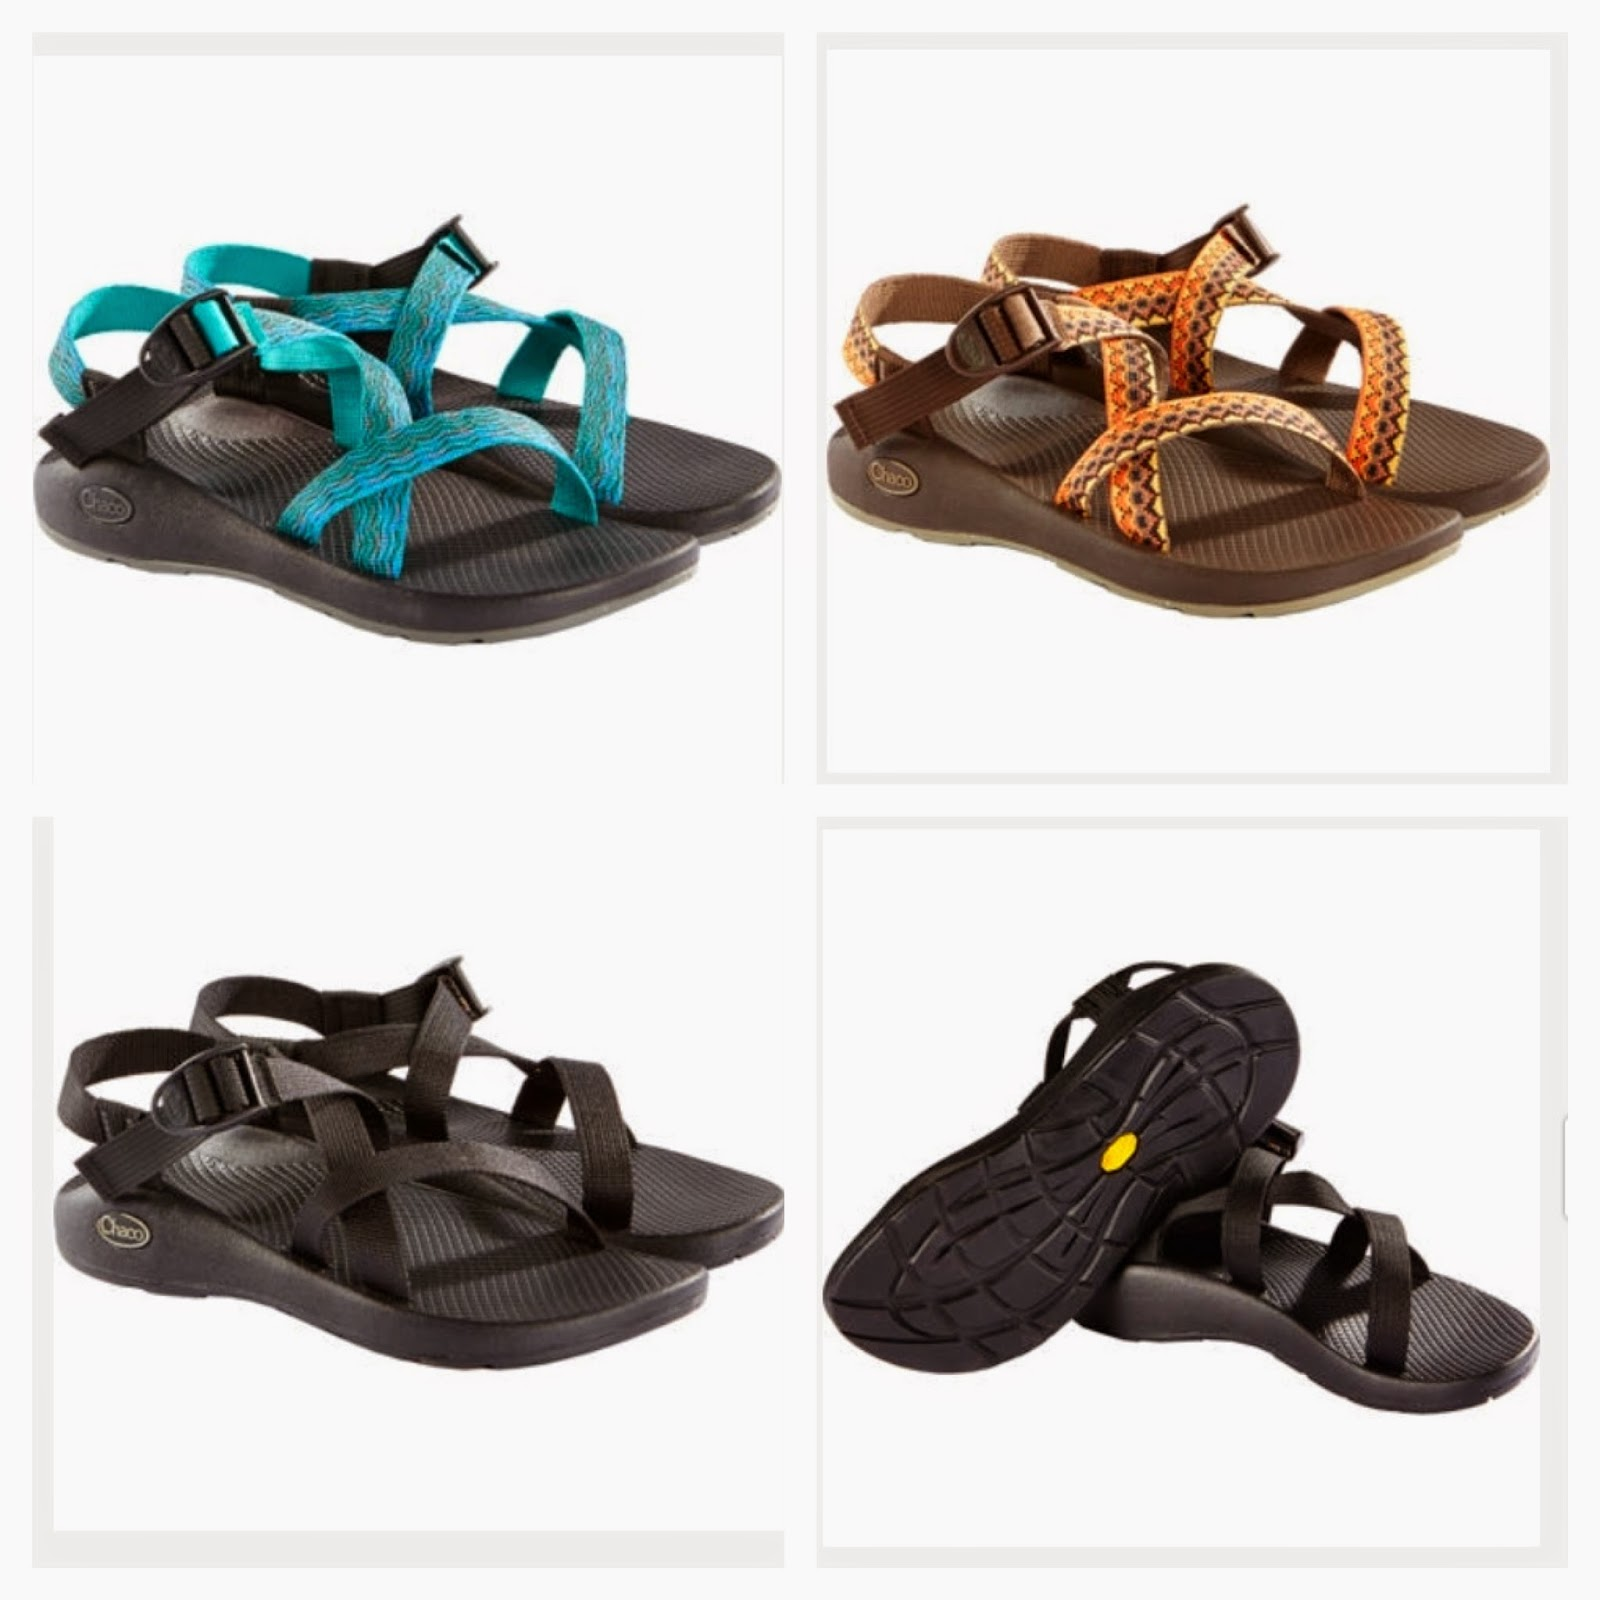 525a0af71cb2 And the Chaco Z 1 Unaweep sandal for men in three colors  Print (grey black